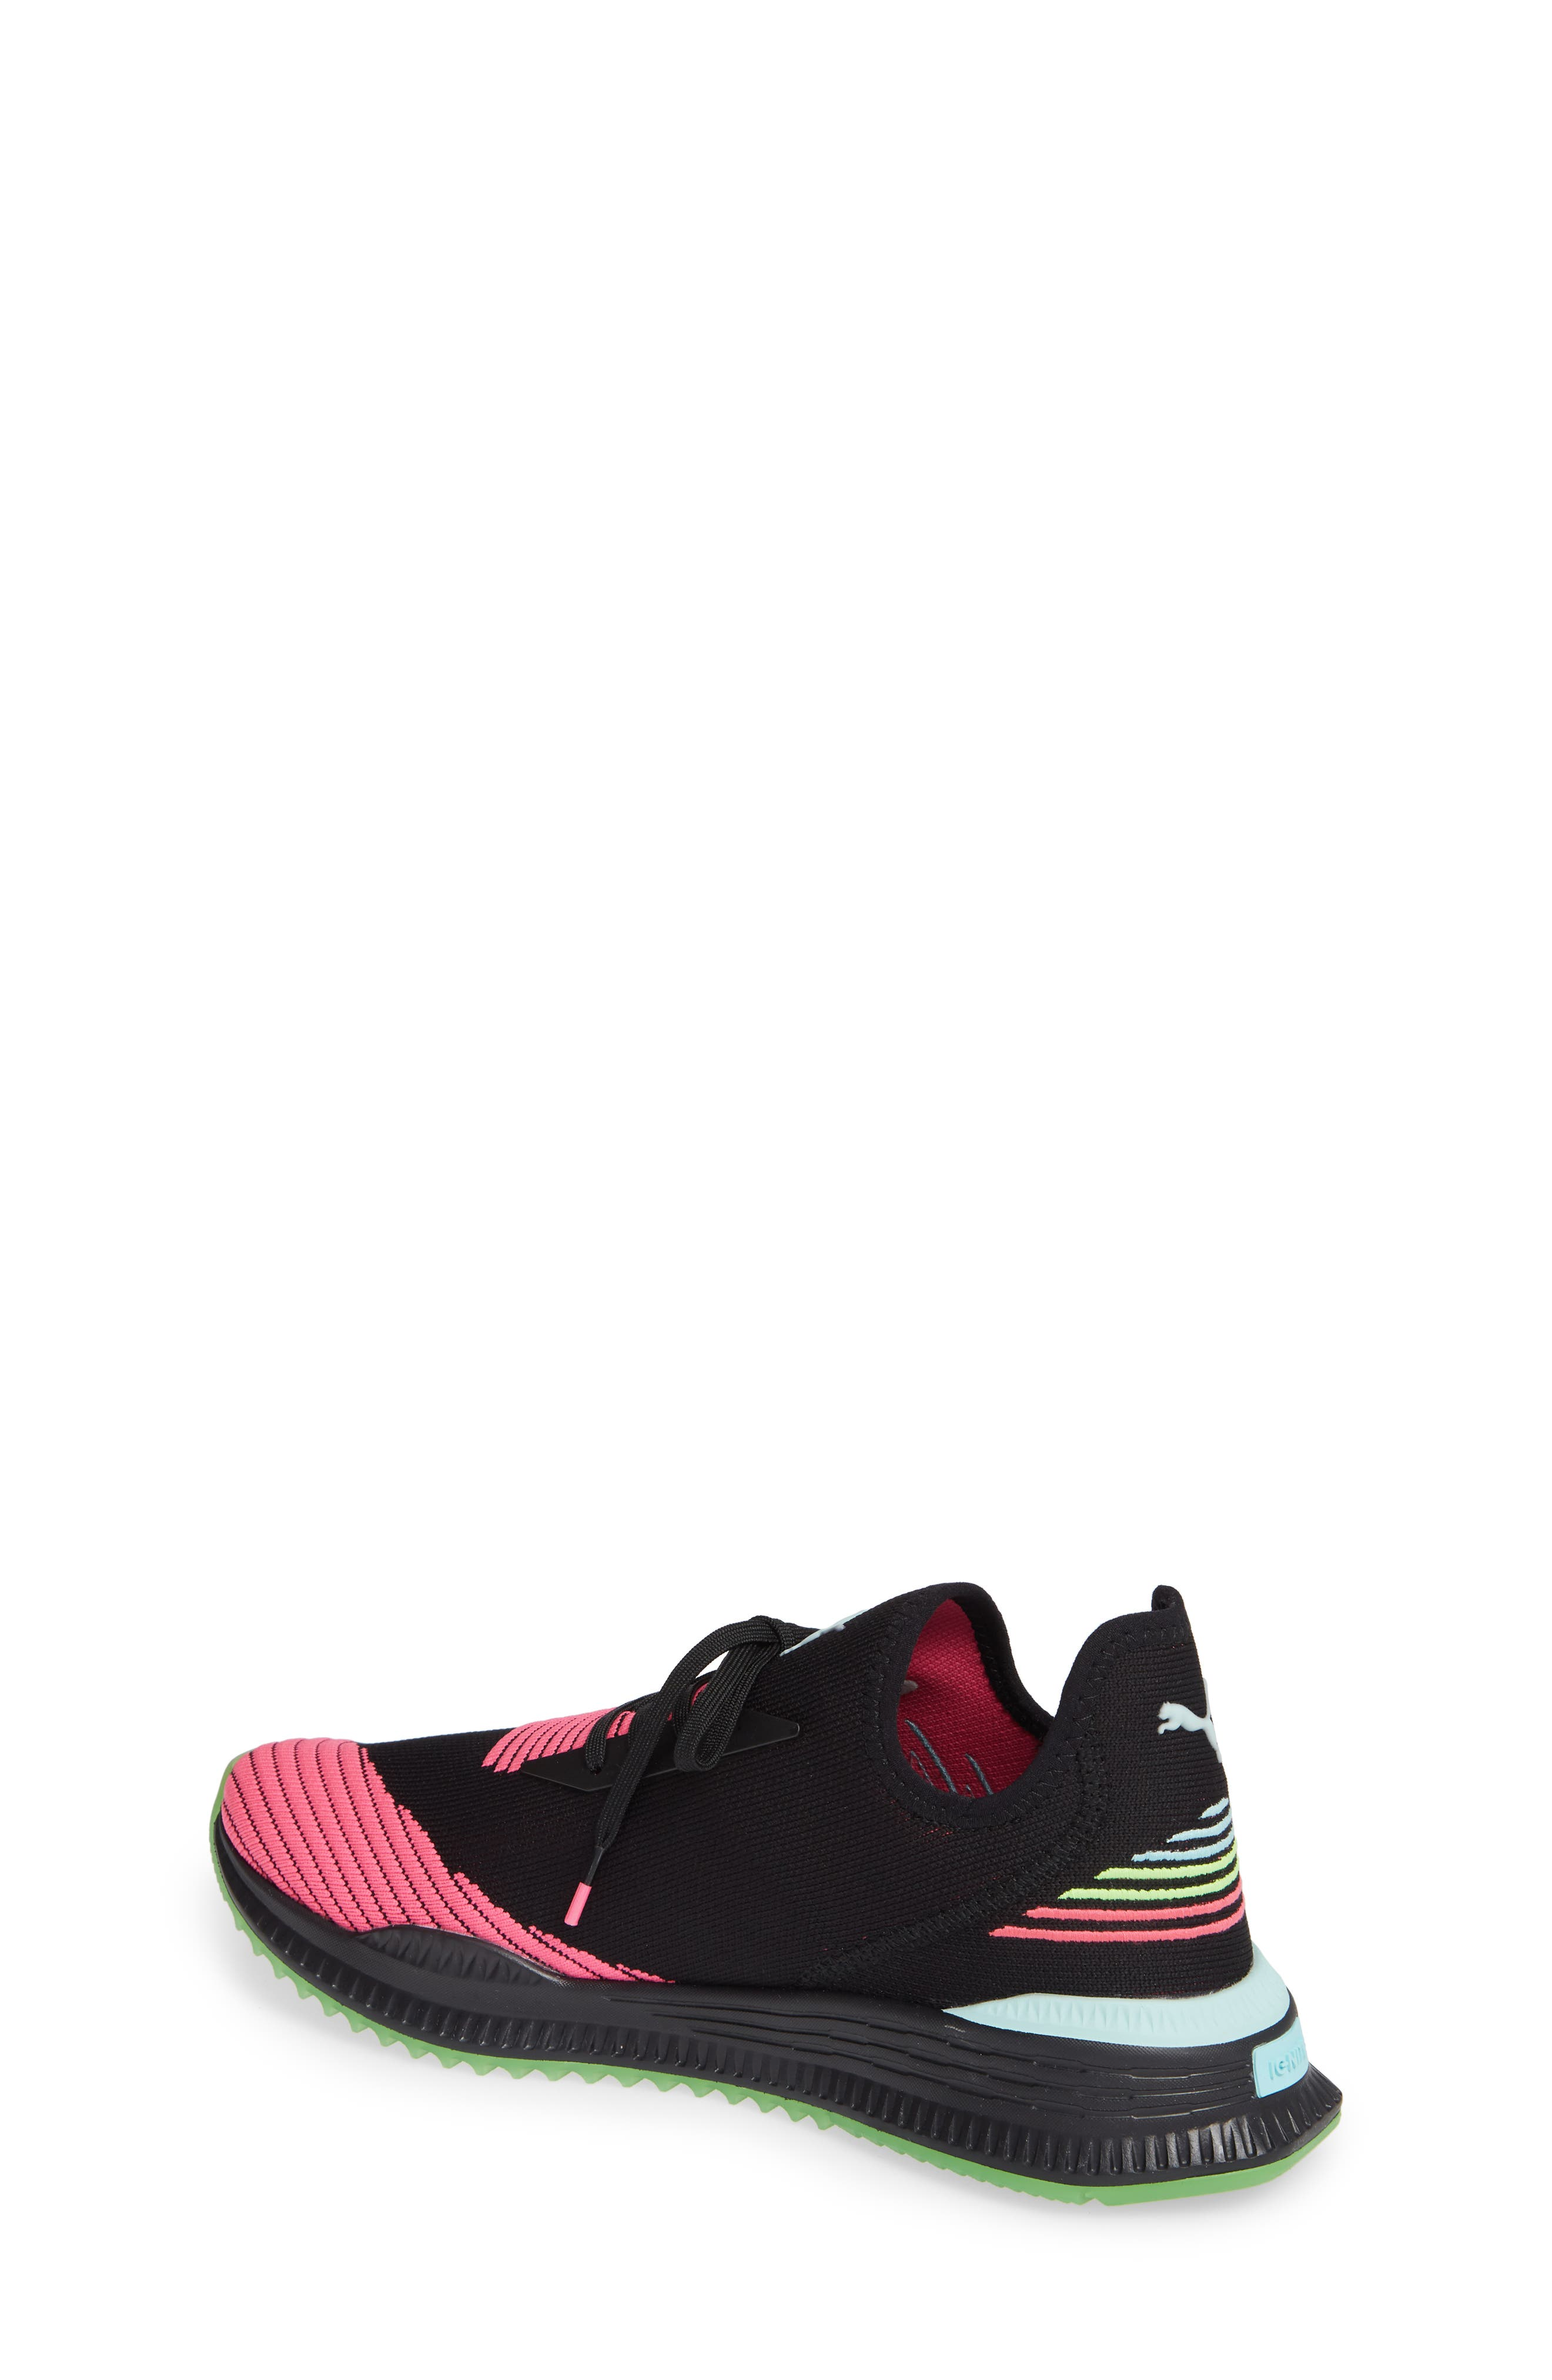 AVID EvoKNIT Sneaker,                             Alternate thumbnail 2, color,                             BLACK/ PINK/ ISLAND PARADISE